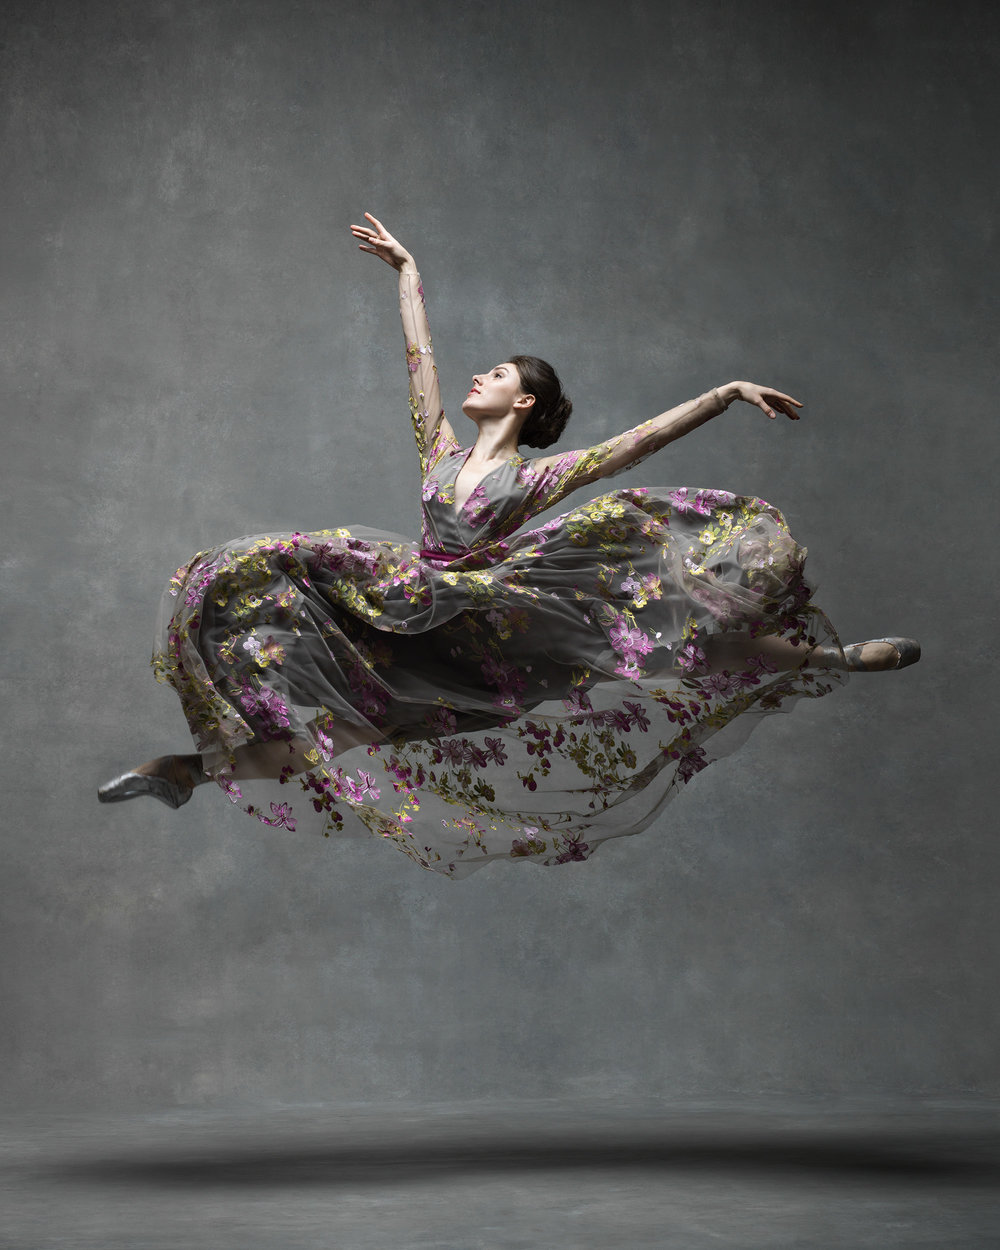 The Body of Dance (Issue 13)